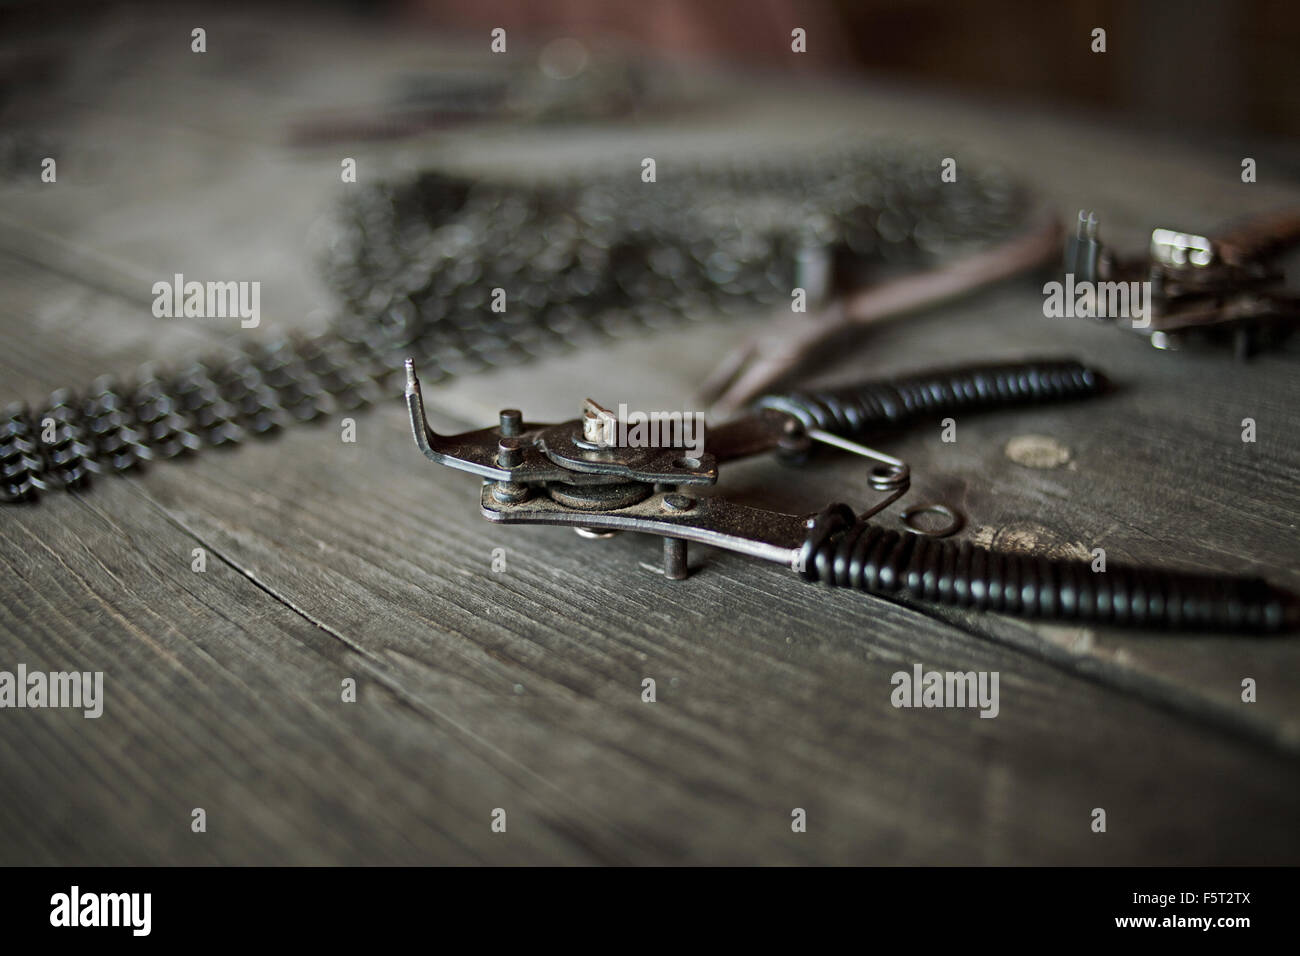 Sweden, Gotland, Hand tool on table - Stock Image